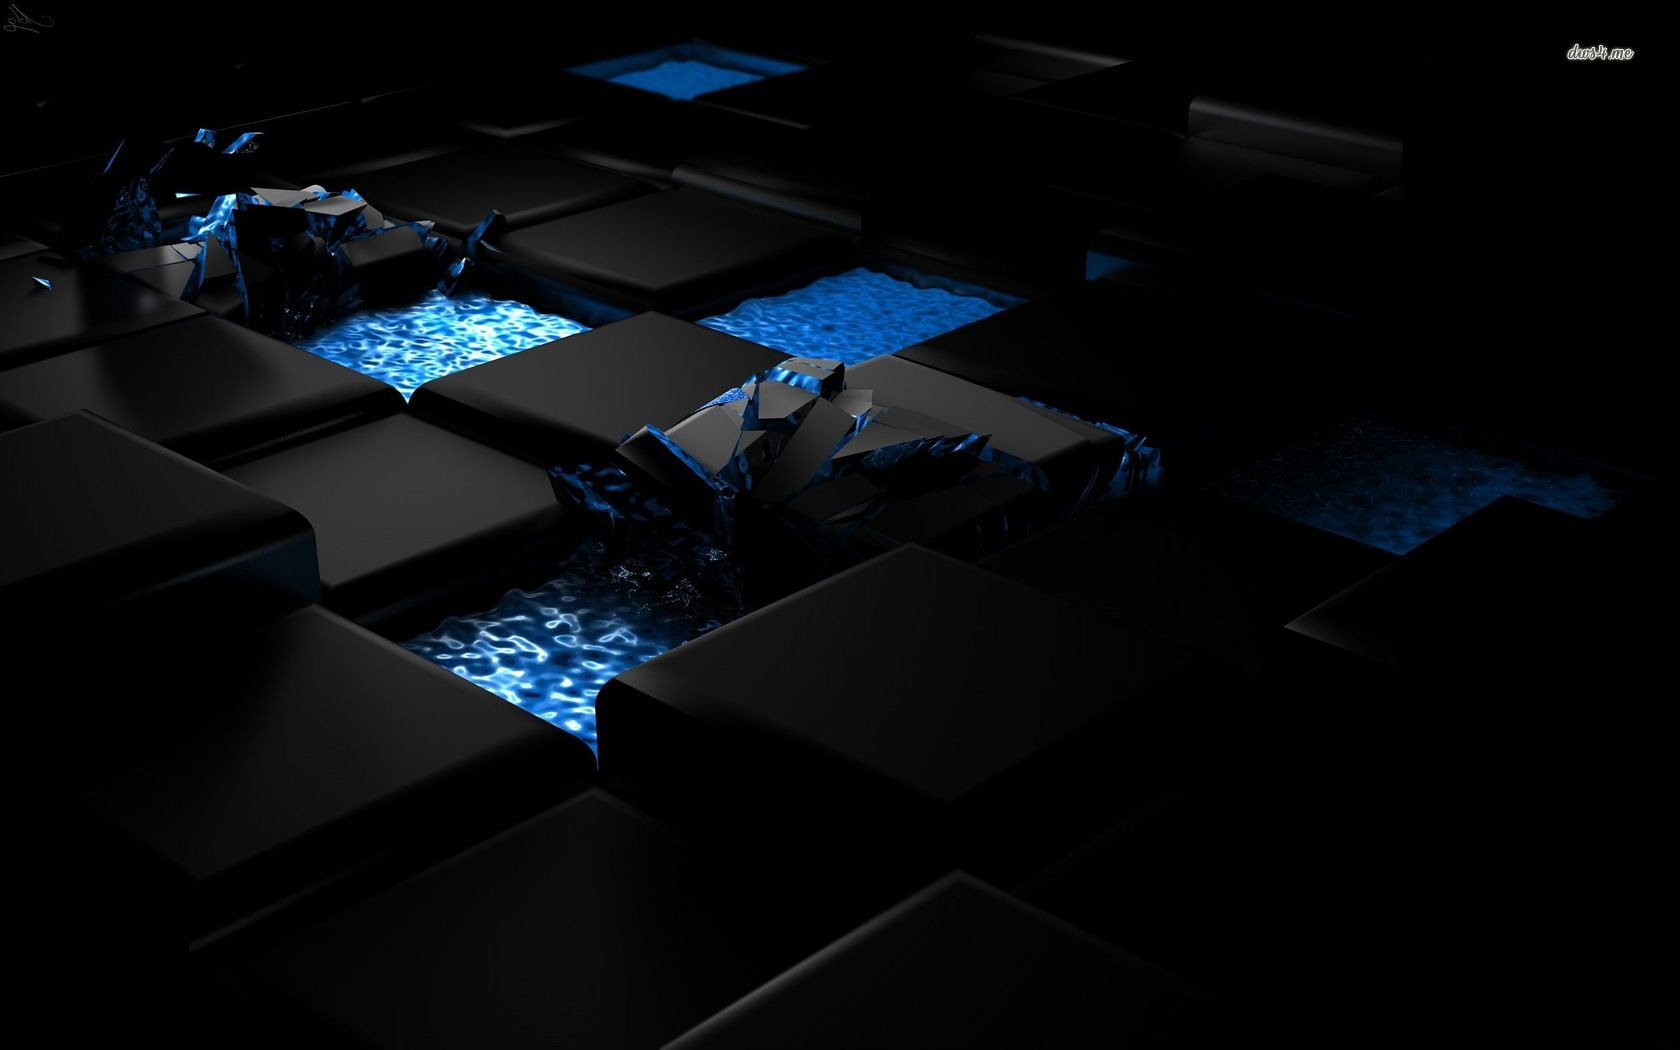 Black cube wallpaper wallpapersafari for Black 3d wallpaper